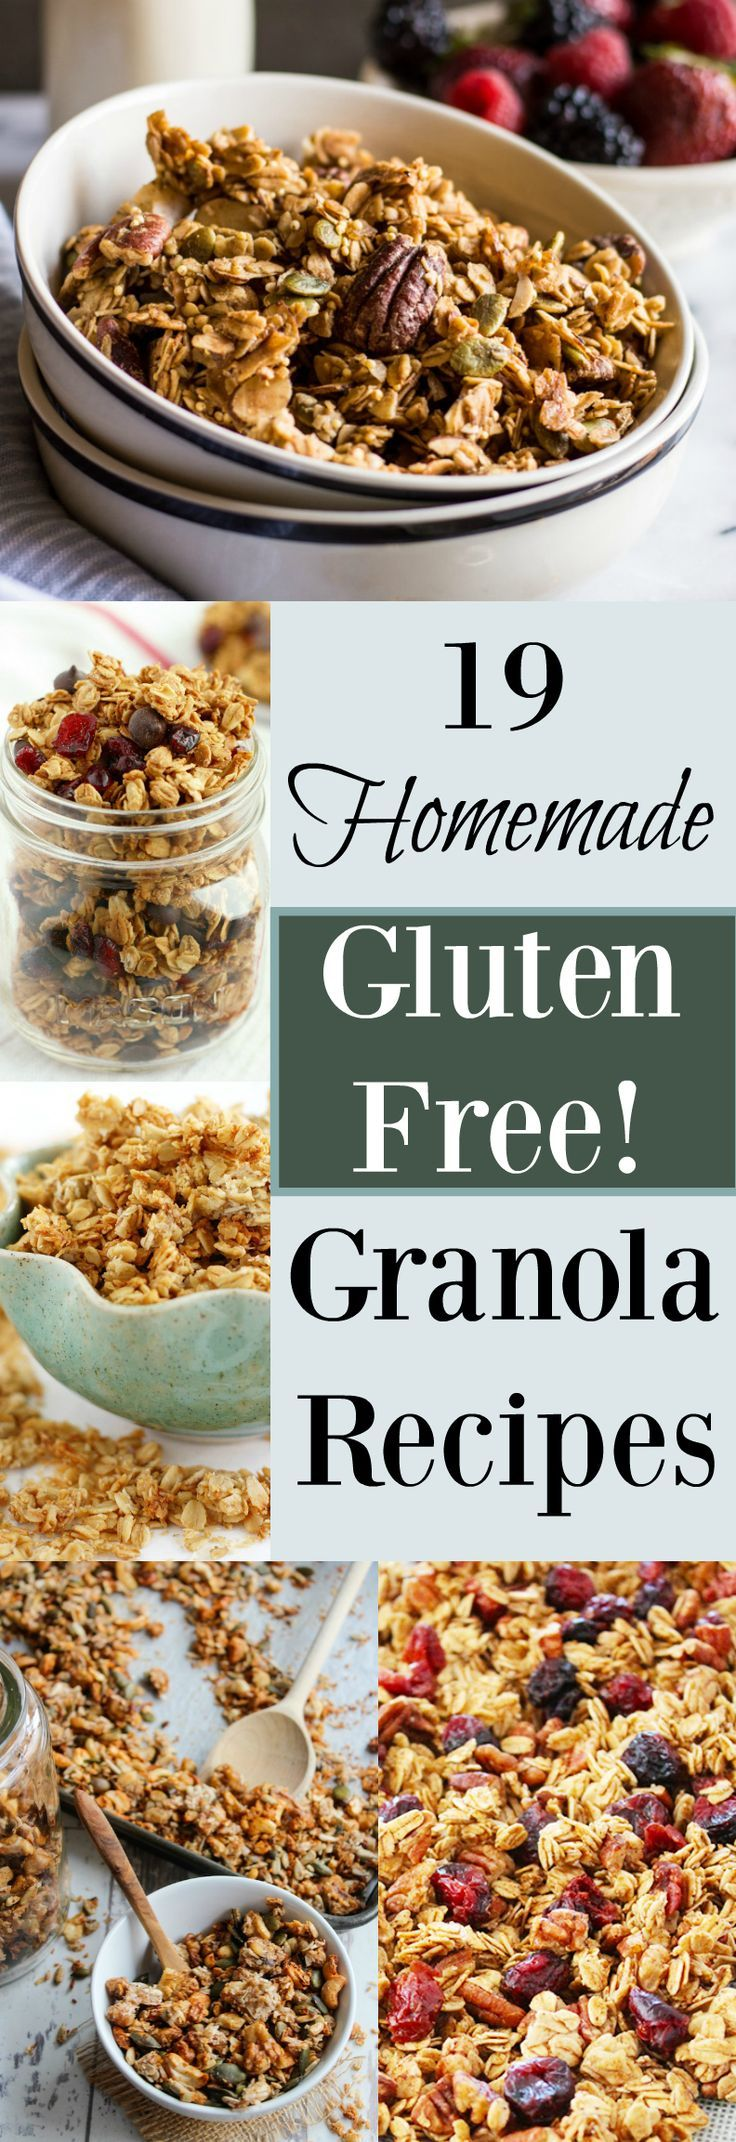 Click this pin to get the recipes, repin to save for later! Trying to eat healthy while gluten free, but not sure what to eat? Don't worry, I've got you covered. Here's a list of the top 19 Homemade Gluten Free Granola Recipes that are perfect for your healthy lifestyle. So sit back, relax and let me do the recipe searching for you.